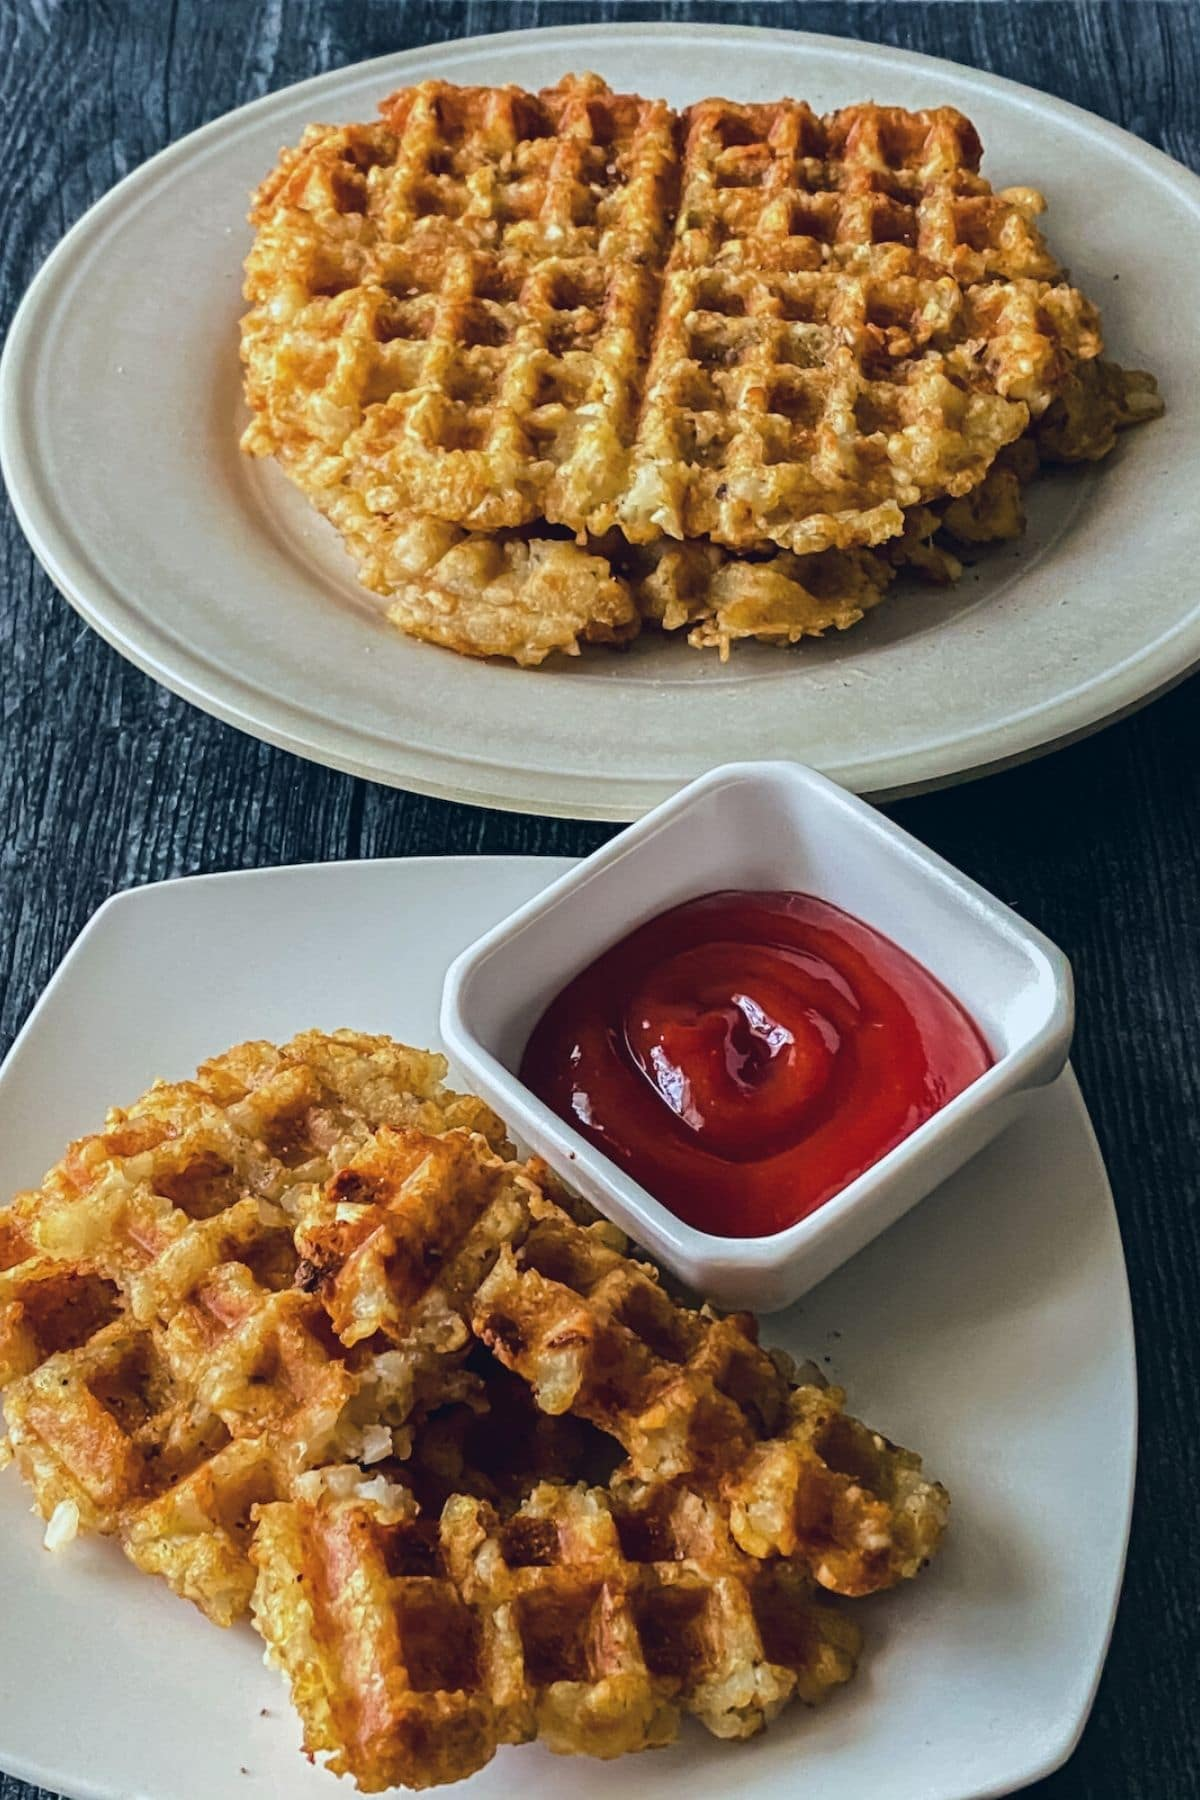 Tater tot waffle sticks on saucer by bowl of sauce